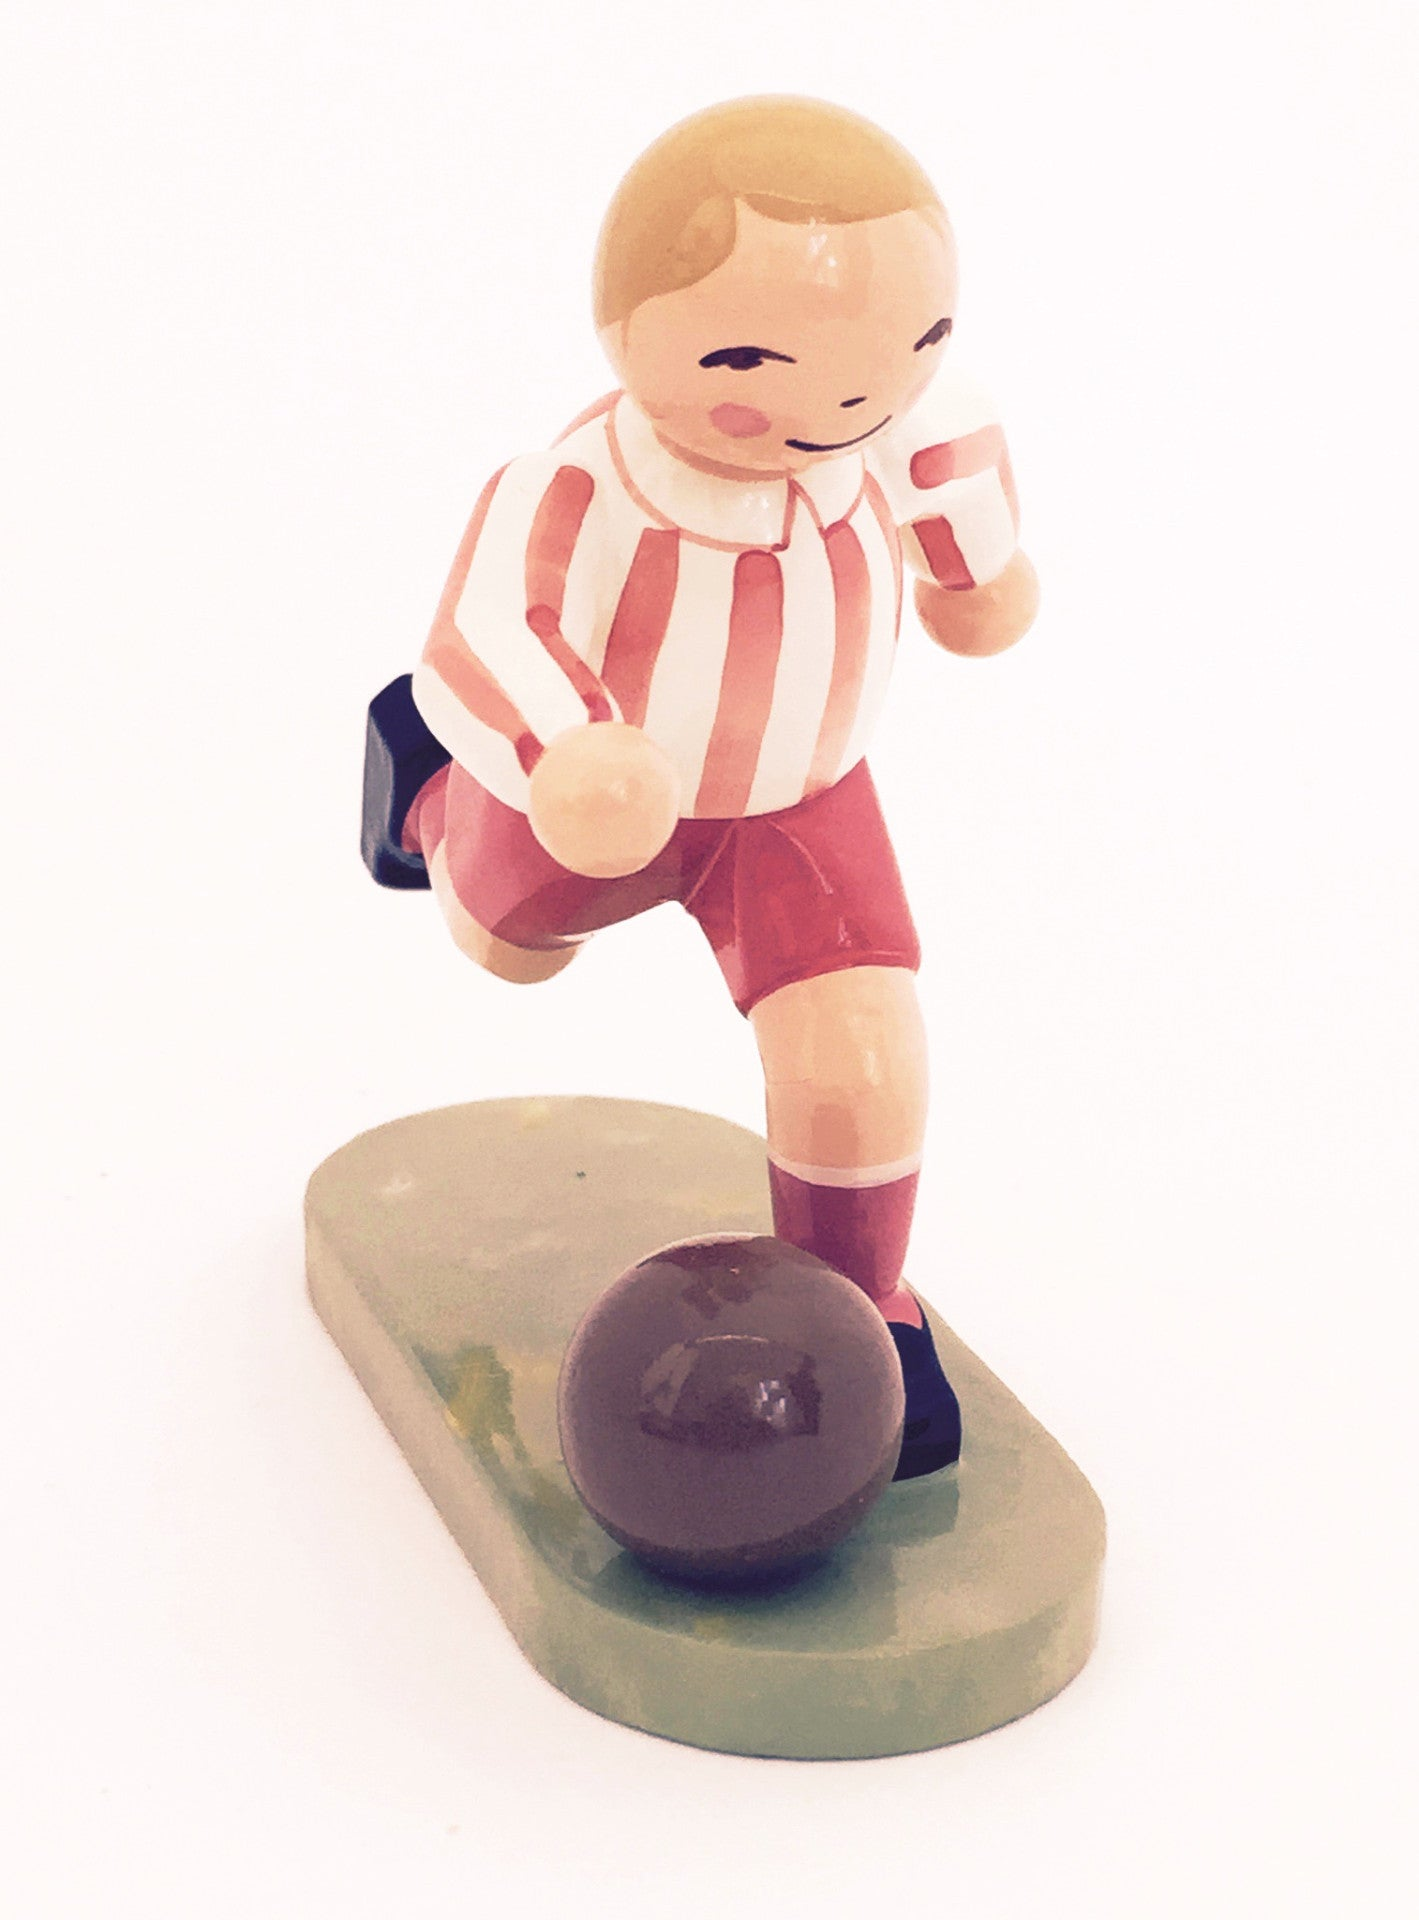 Soccer Player, Red-Striped Shirt - Exclusive for 2006